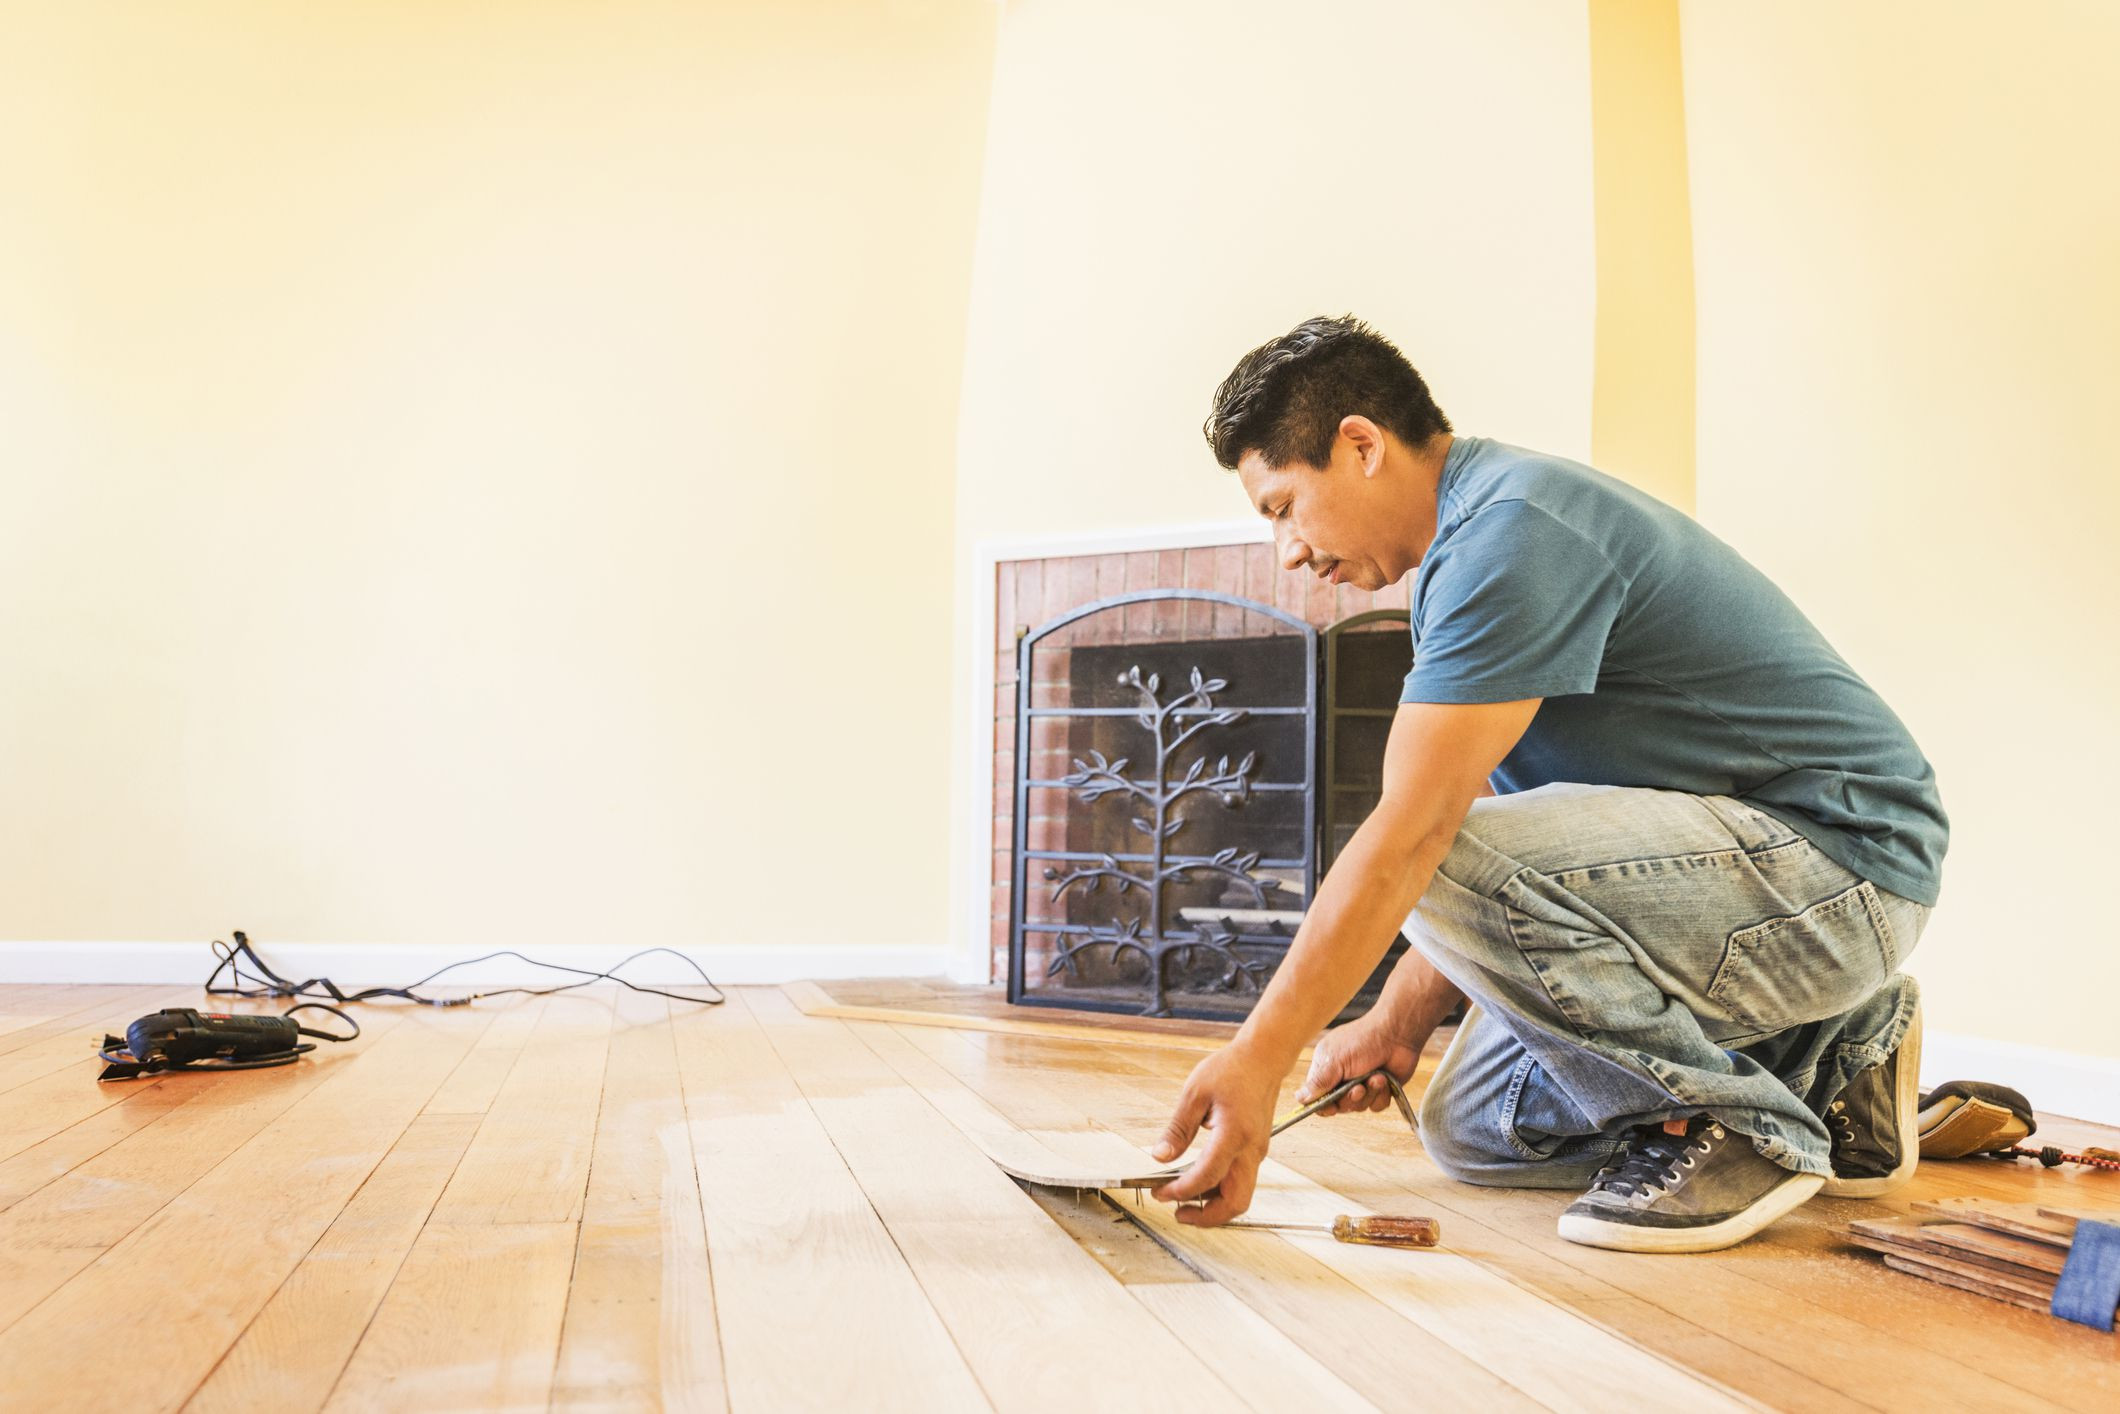 Indoor Humidity for Hardwood Floors Of Hardwood Installer How to Hire and What to Expect Inside Installing Wood Flooring 592016327 57af51a23df78cd39cfa08d9